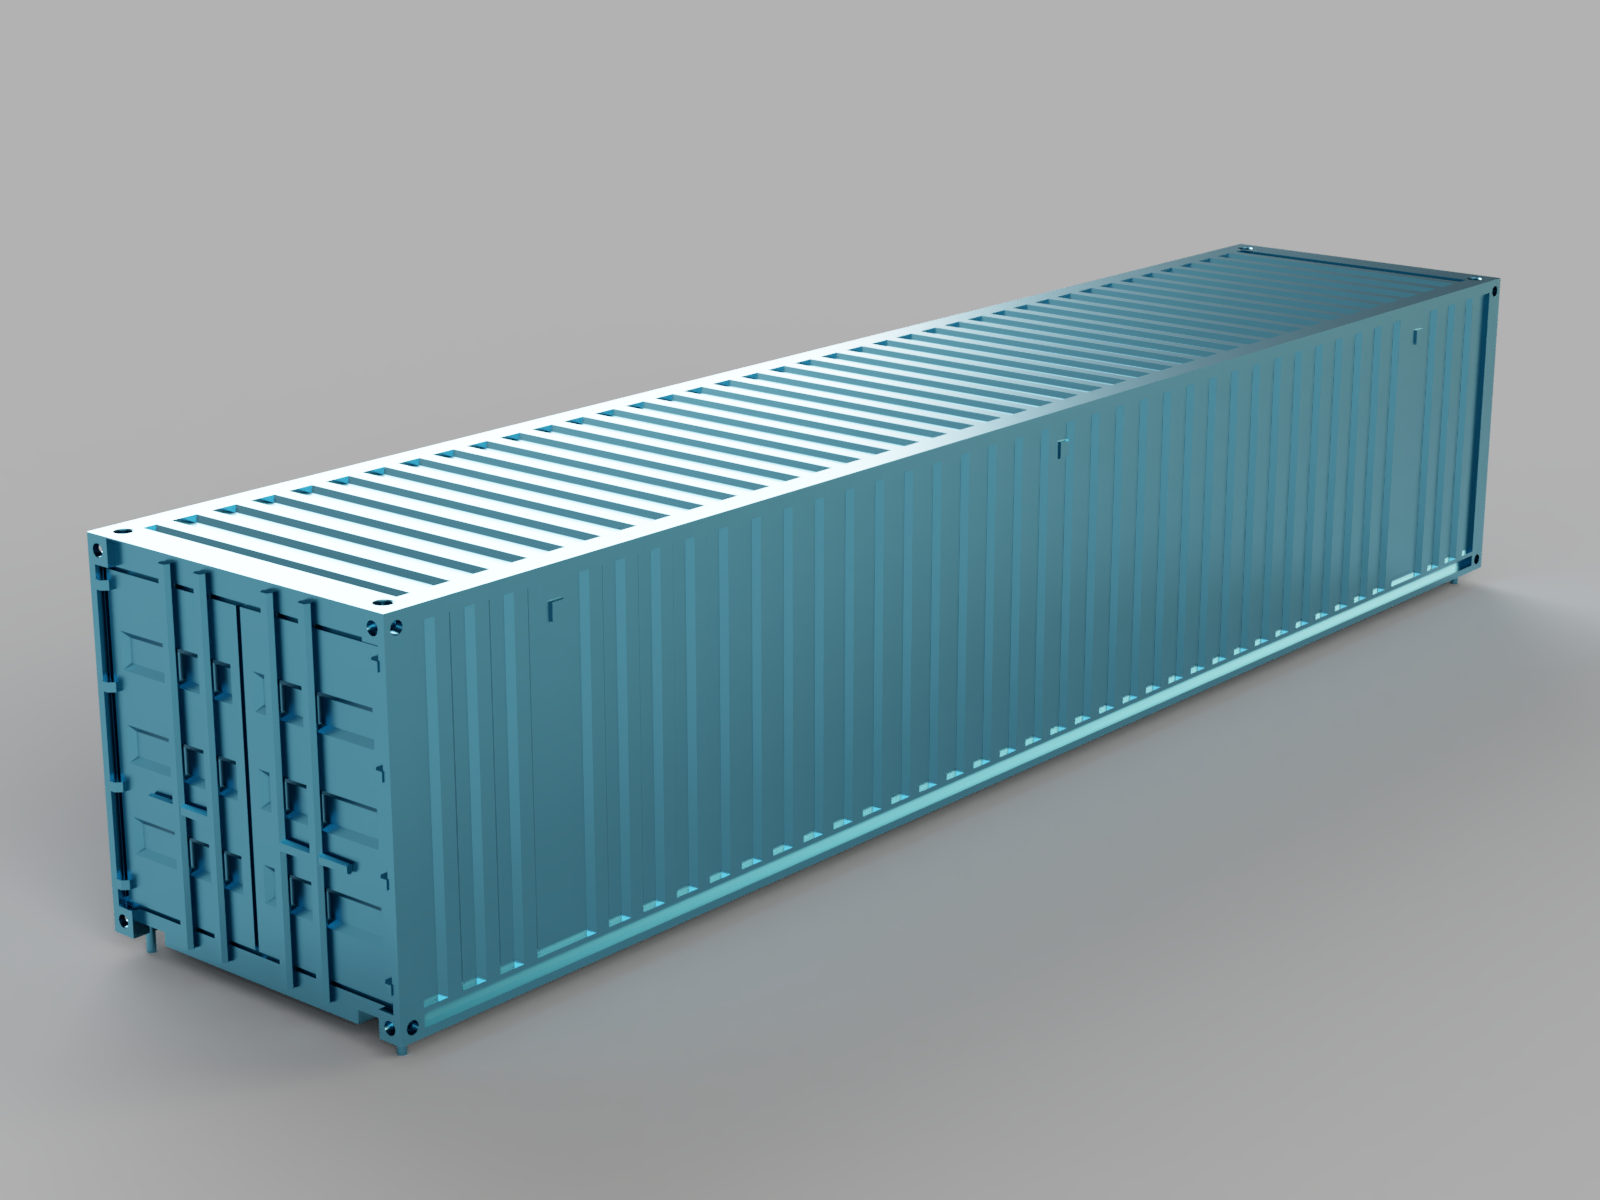 container_orig_2019-Jul-22_08-00-32AM-000_CustomizedView40227941870.png Download free STL file HO scale container 40ft (piko-compatible) • 3D printing object, positron